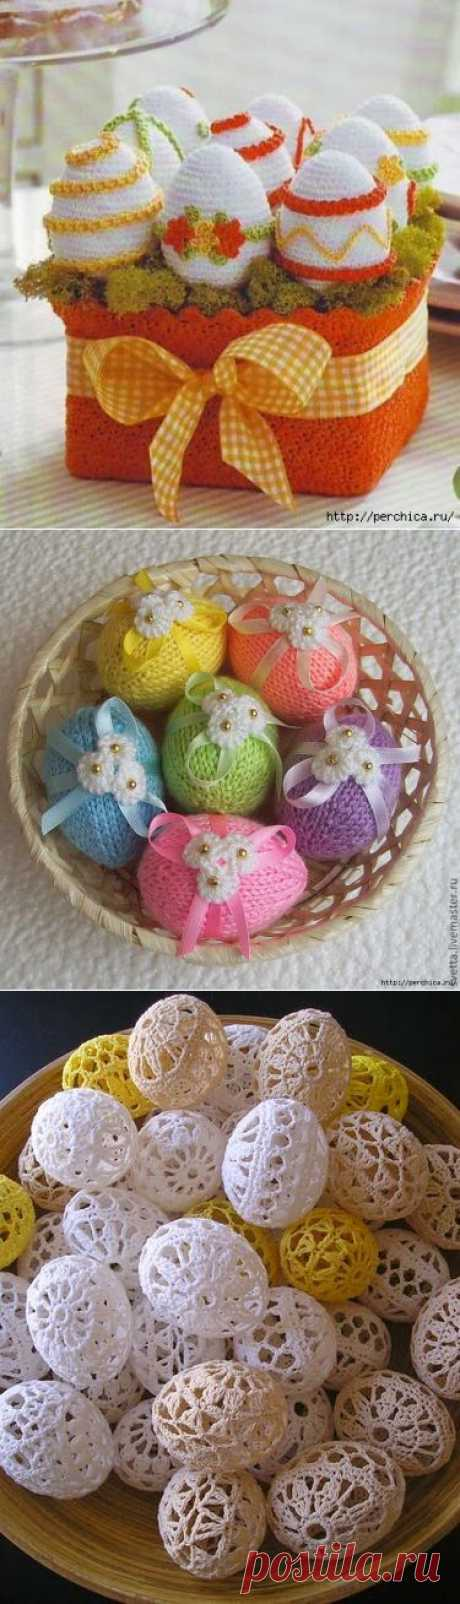 Knitted decor of Easter eggs - mk and schemes.